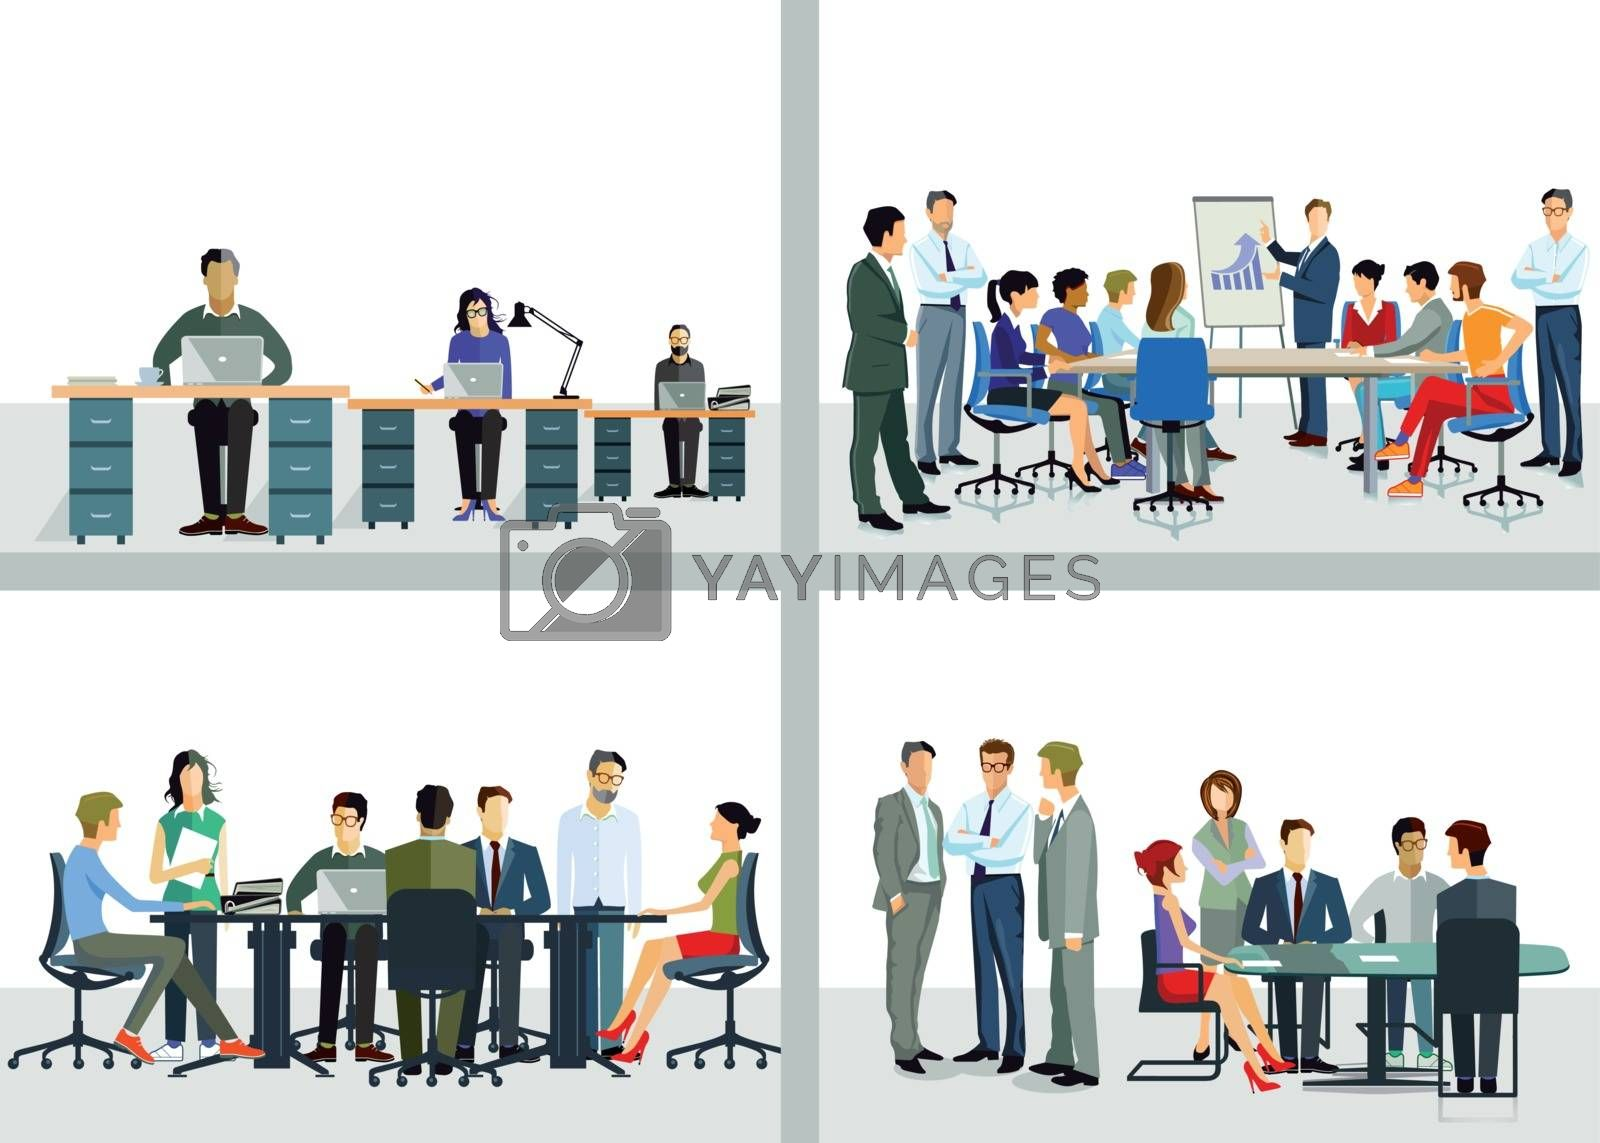 Collaboration in the company and office